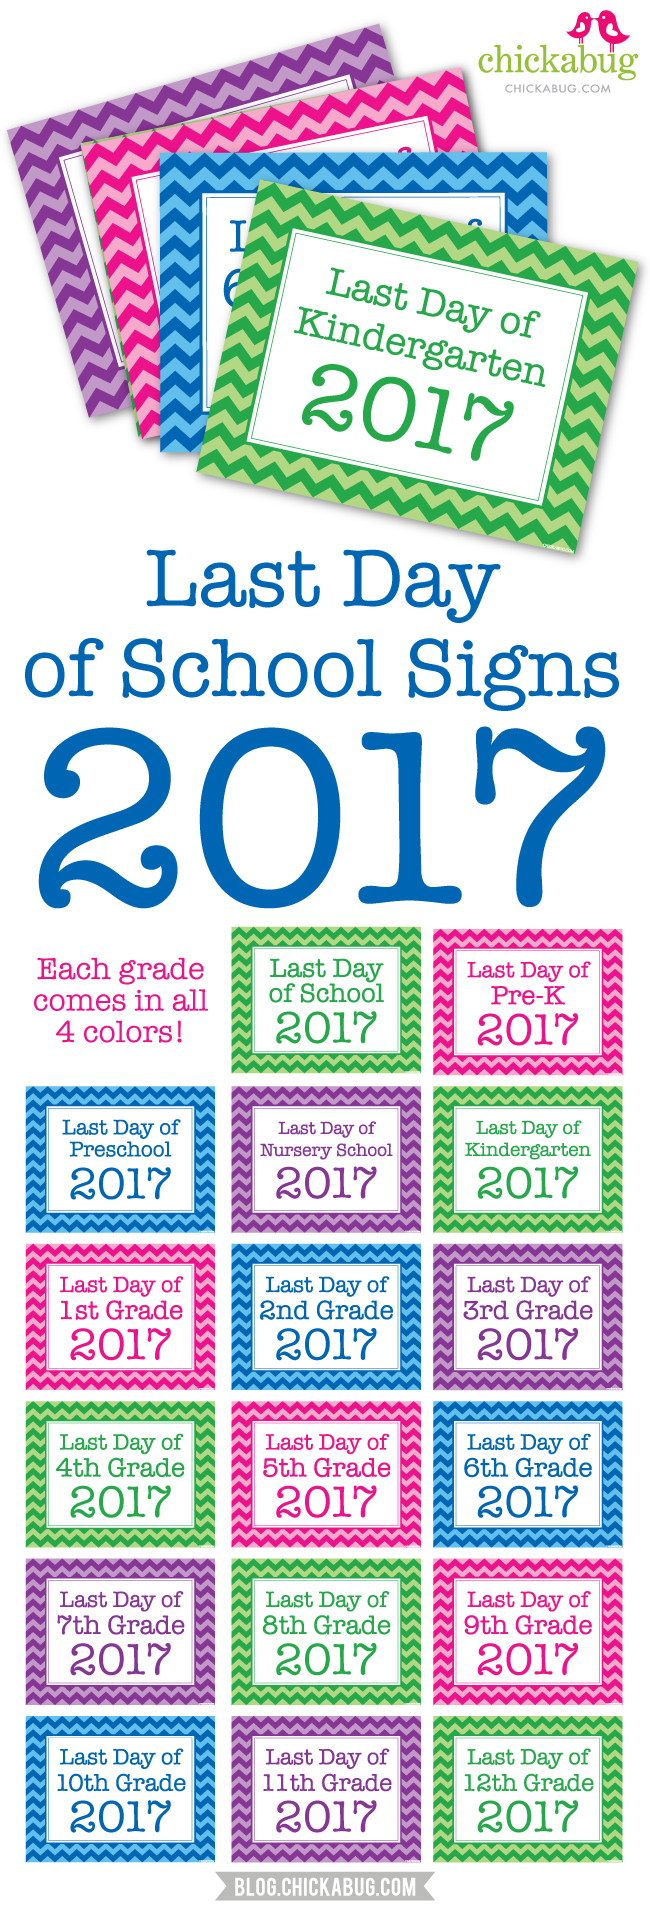 Free Printable Last Day Of School Signs 2017 | Chickabug - Free Printable First Day Of School Signs 2017